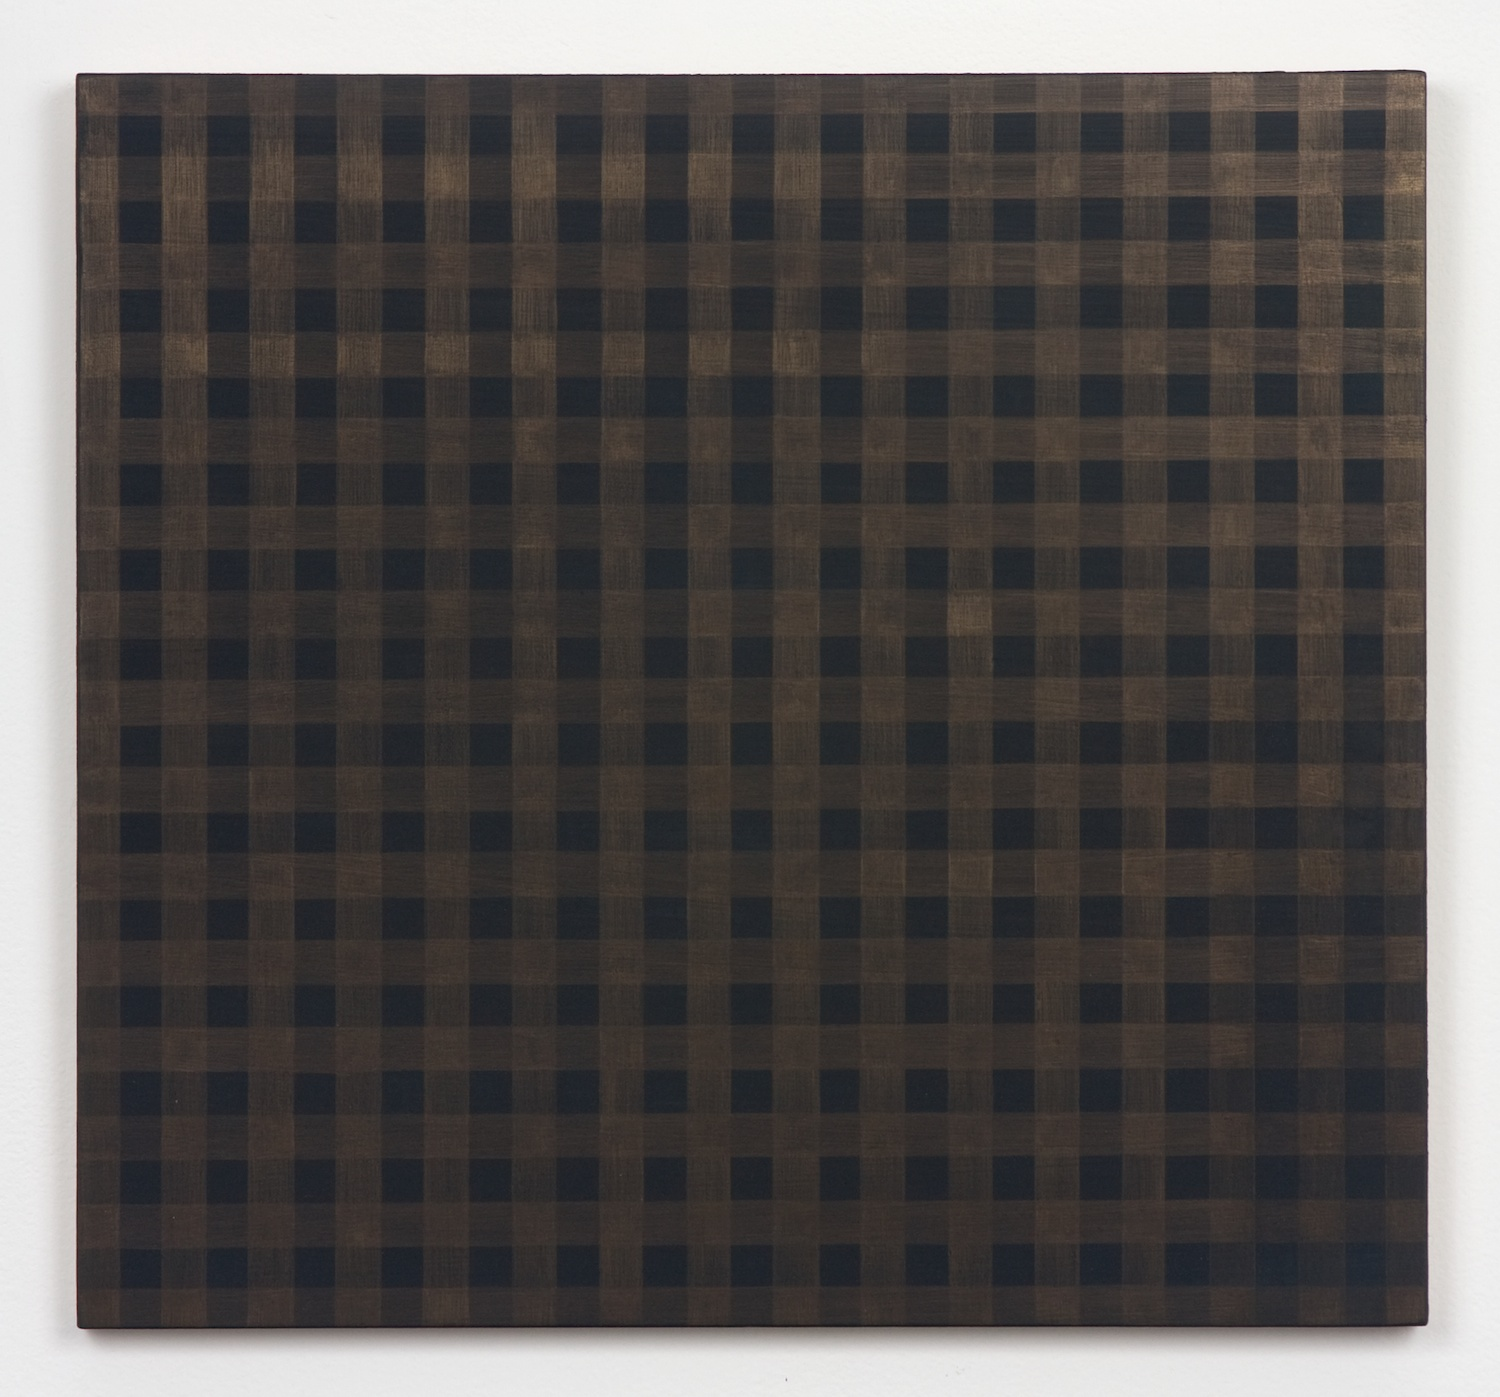 Michelle Grabner  Untitled  2010 Gold and gesso on panel 15 ½h x 14 ½w in MGrab177